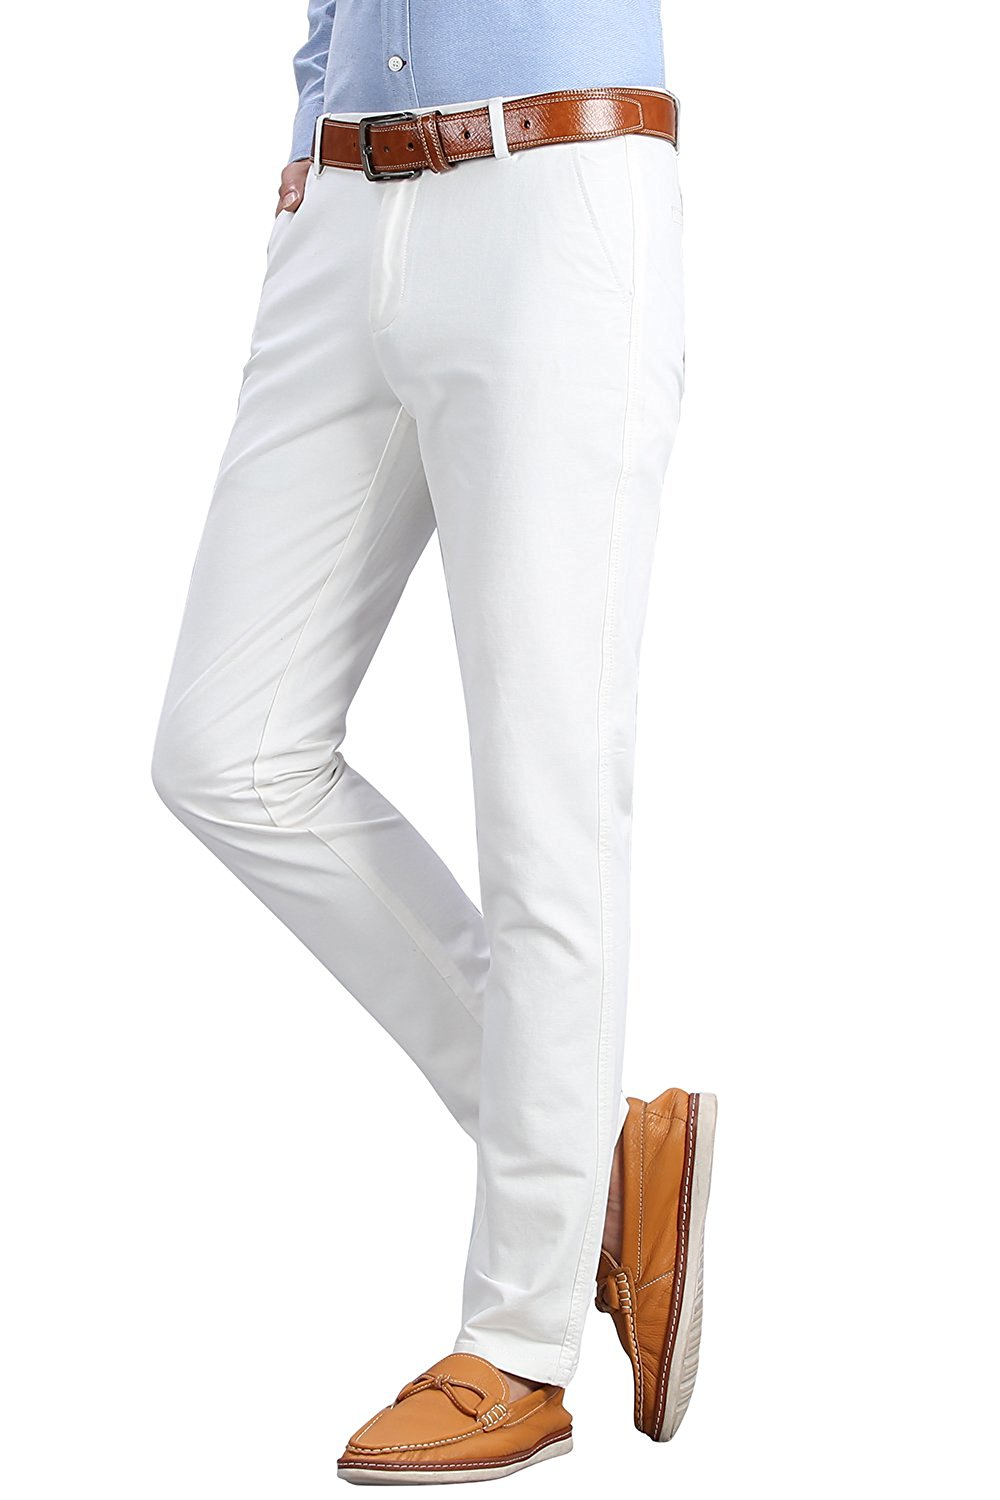 3253c417a55 Get Quotations · FLY HAWK Mens Slim Fit Tapered Flat Front Casual Pants 100%  Cotton Work Pants